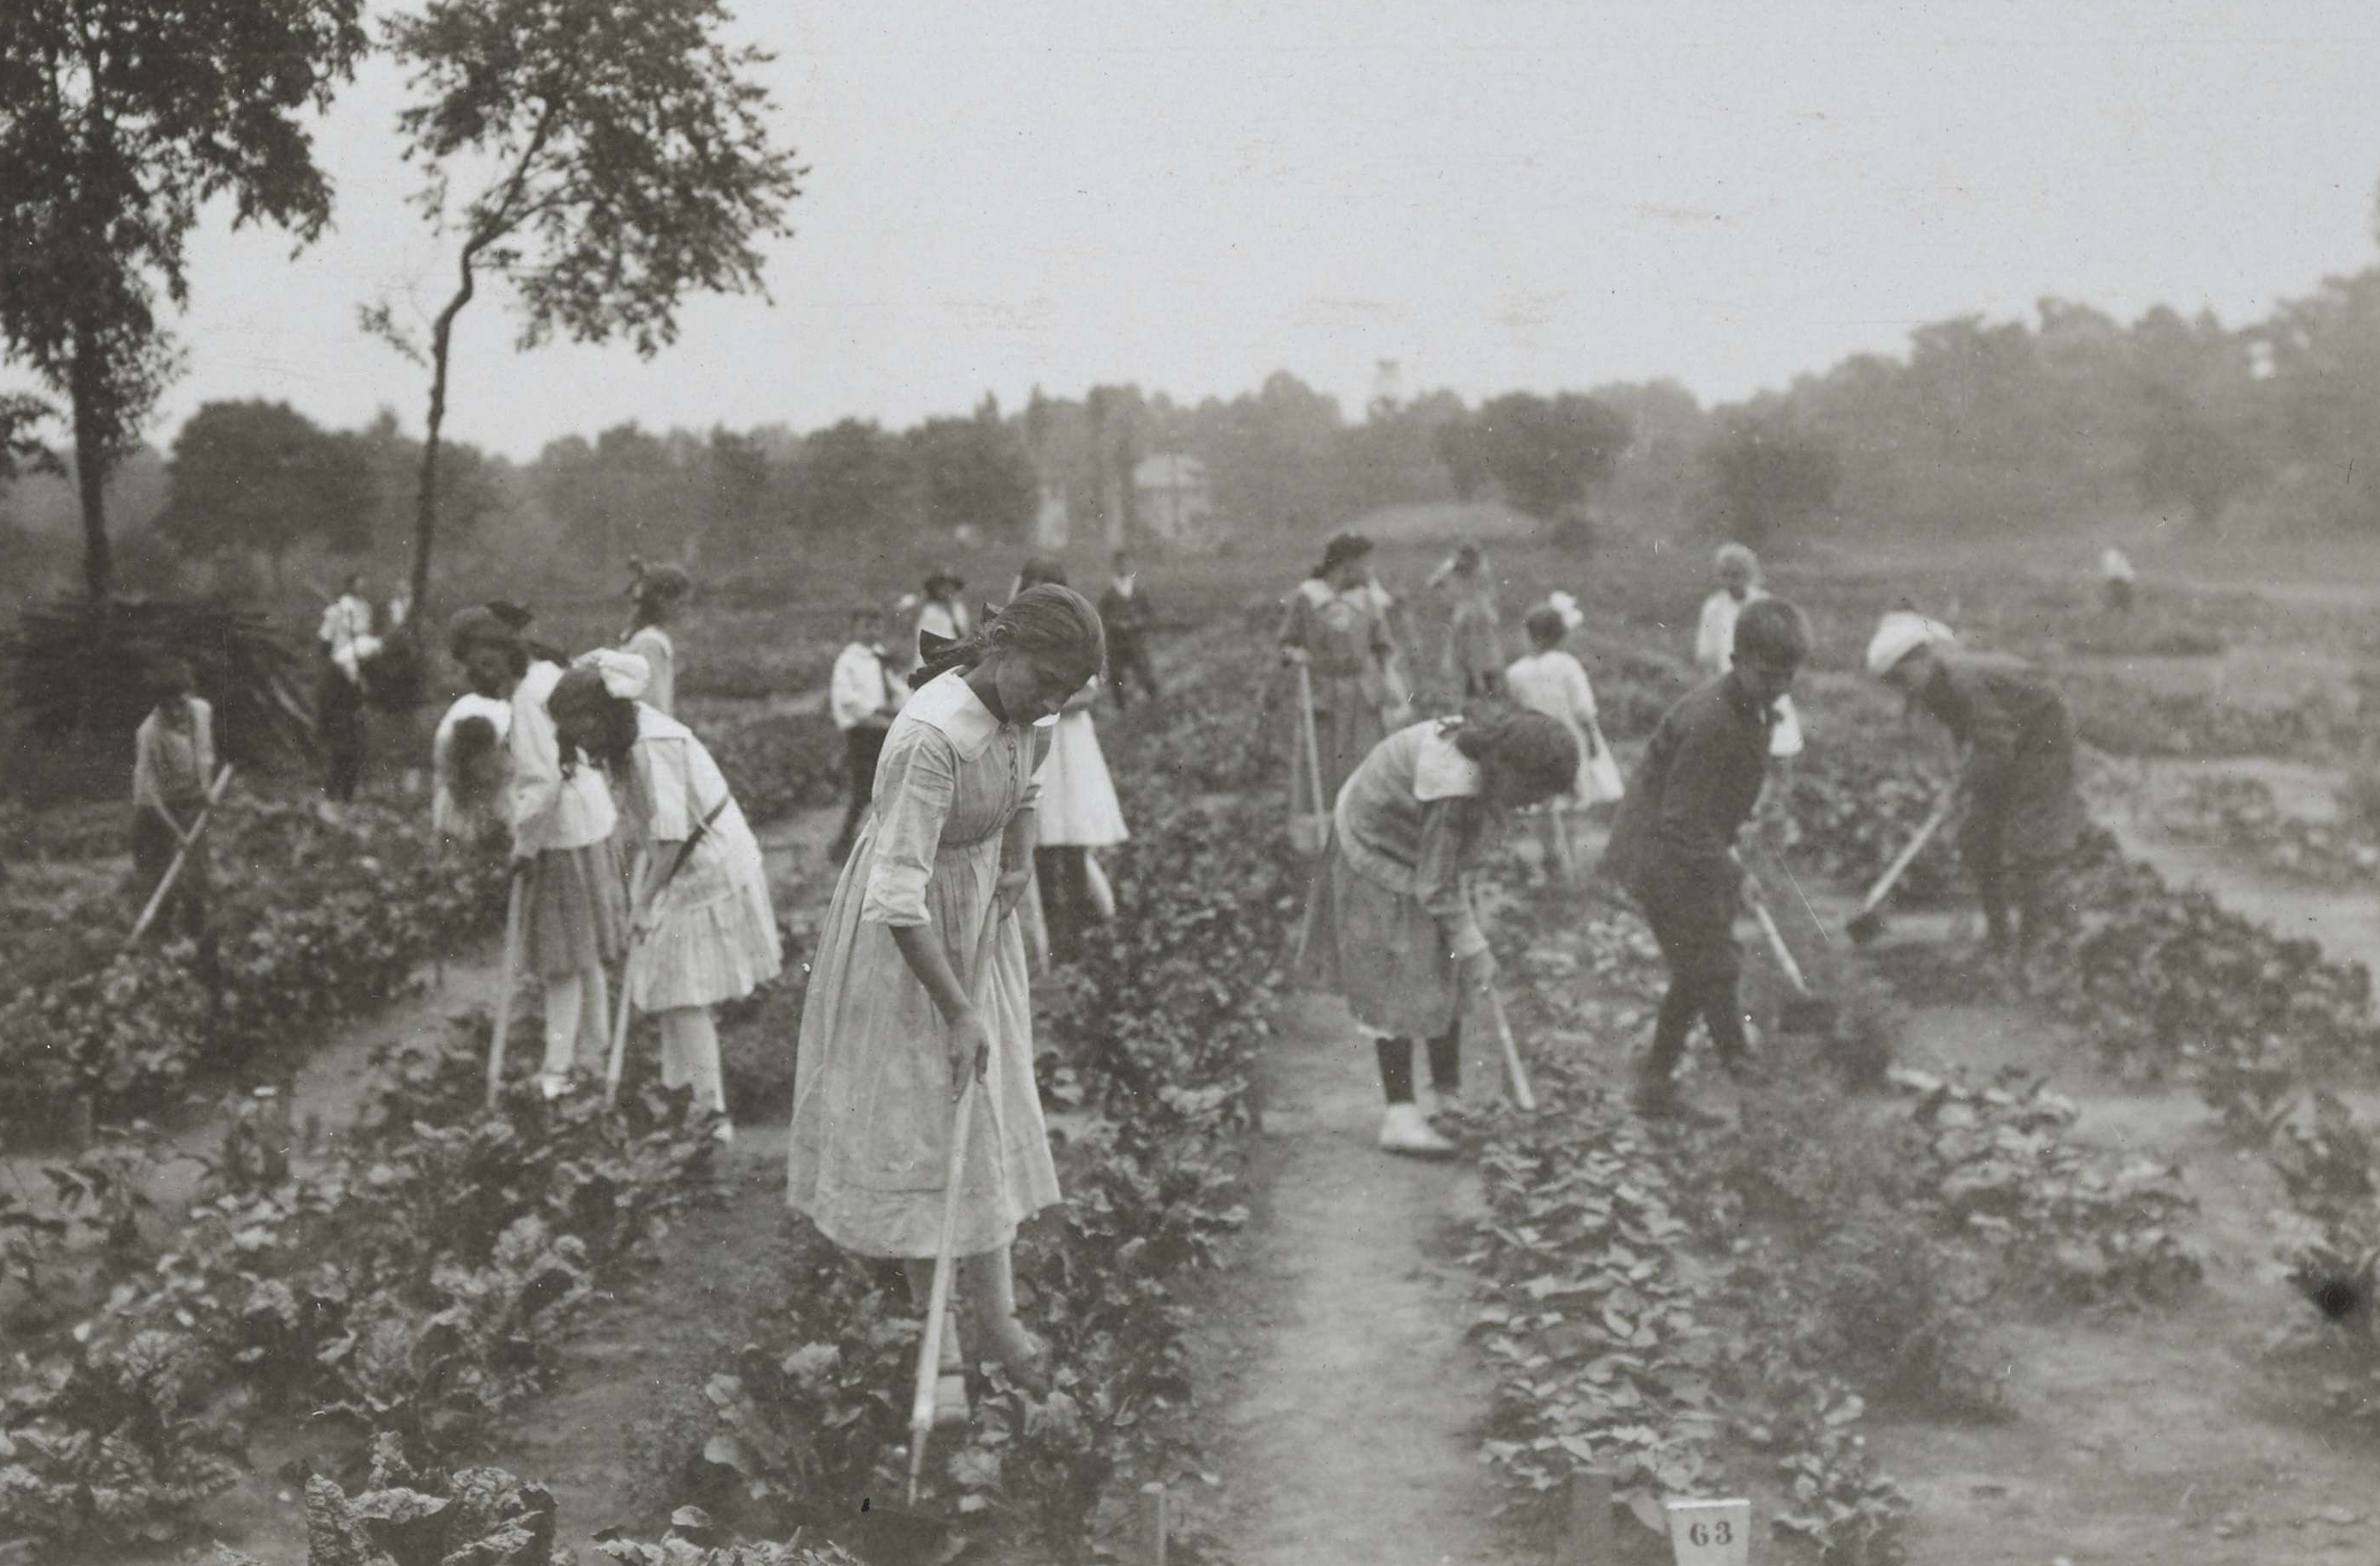 War garden activities by the children of the Irving-Jefferson School, Plainfield, New Jersey